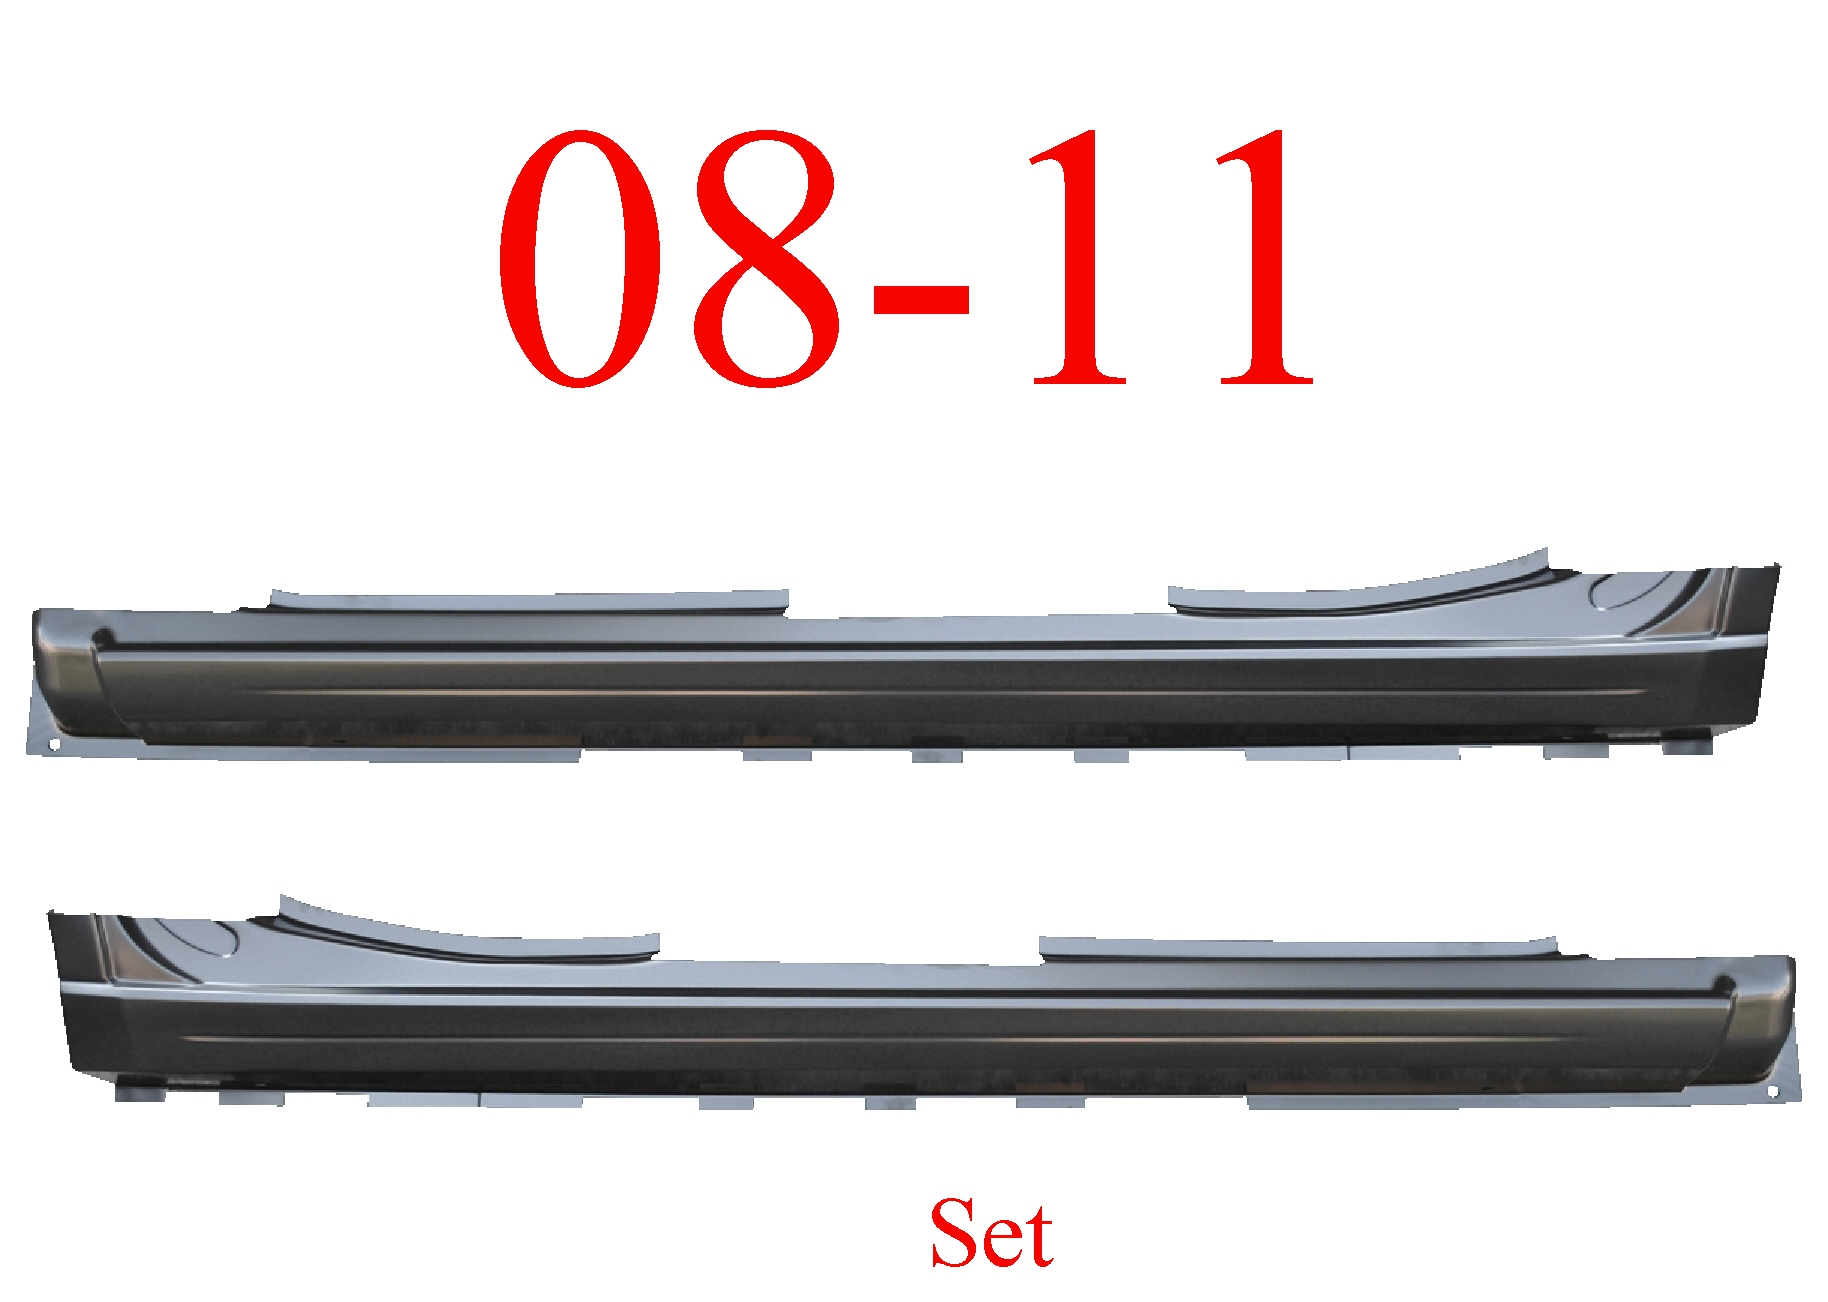 08-11 Ford Focus Extended Rocker Set Panel 4 Door